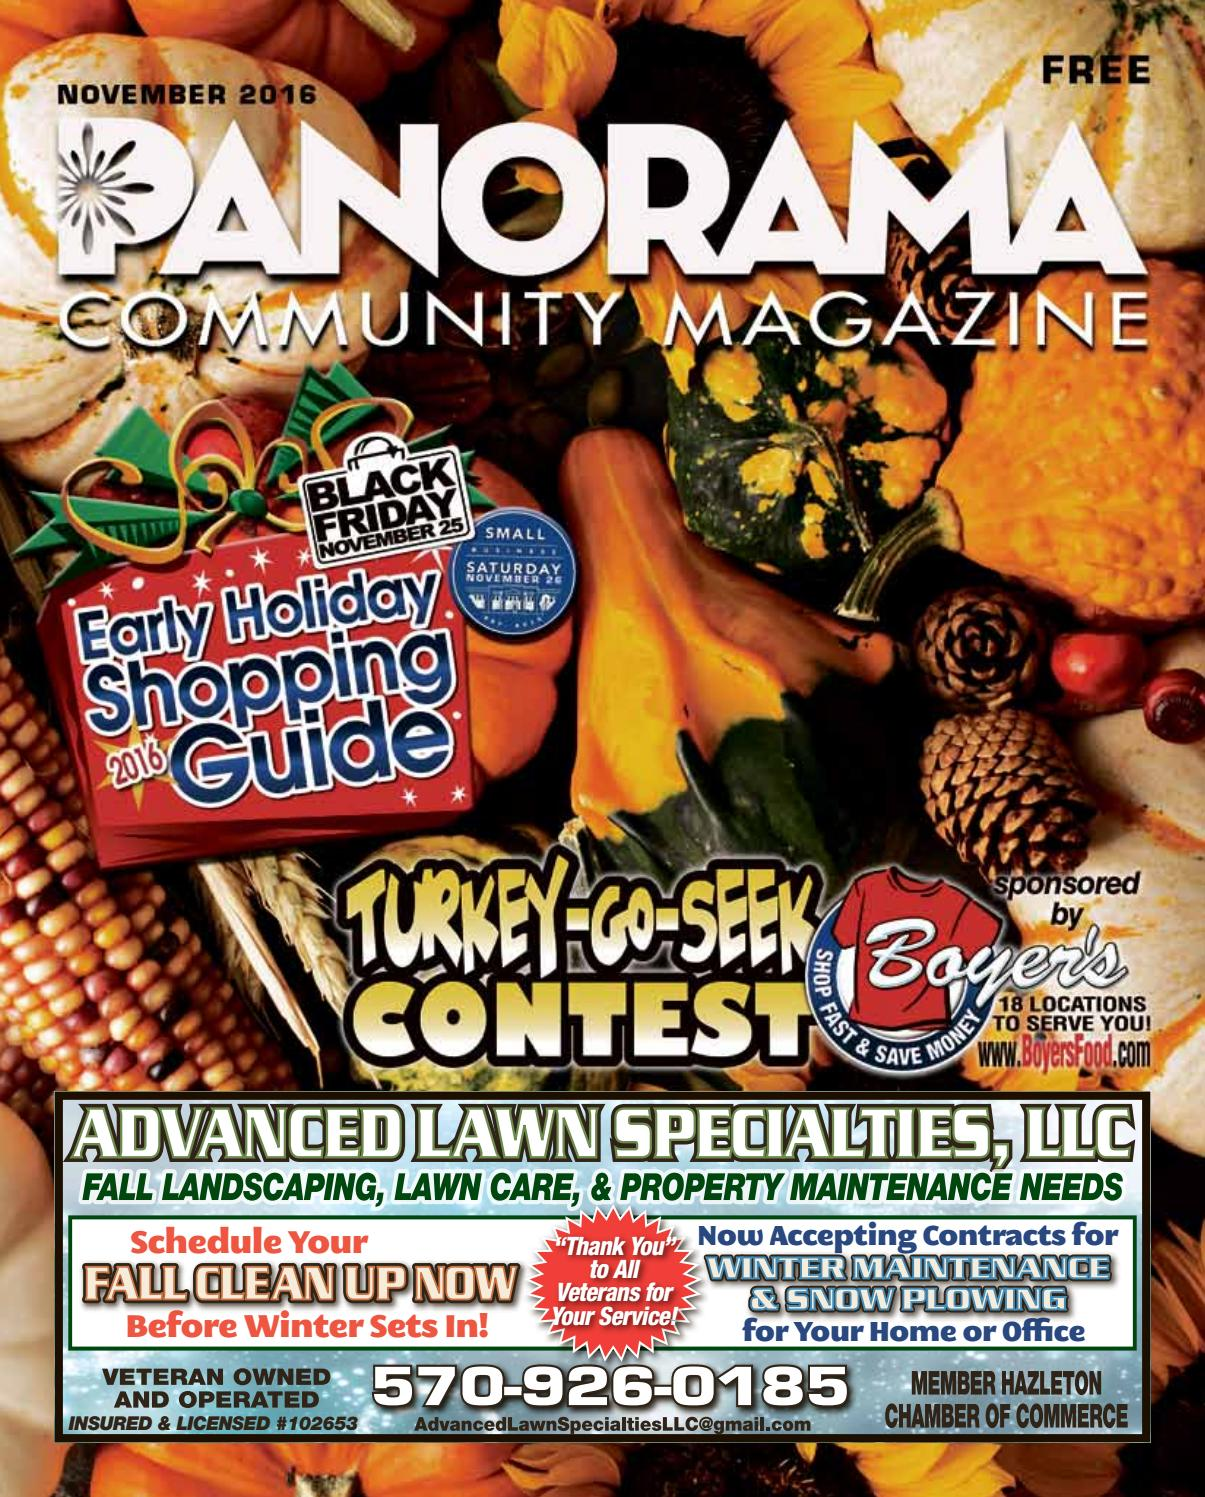 Kitchen gallery design center north broad street west hazleton pa - Panorama Community Magazine November 2016 By Panorama Community Magazine Issuu